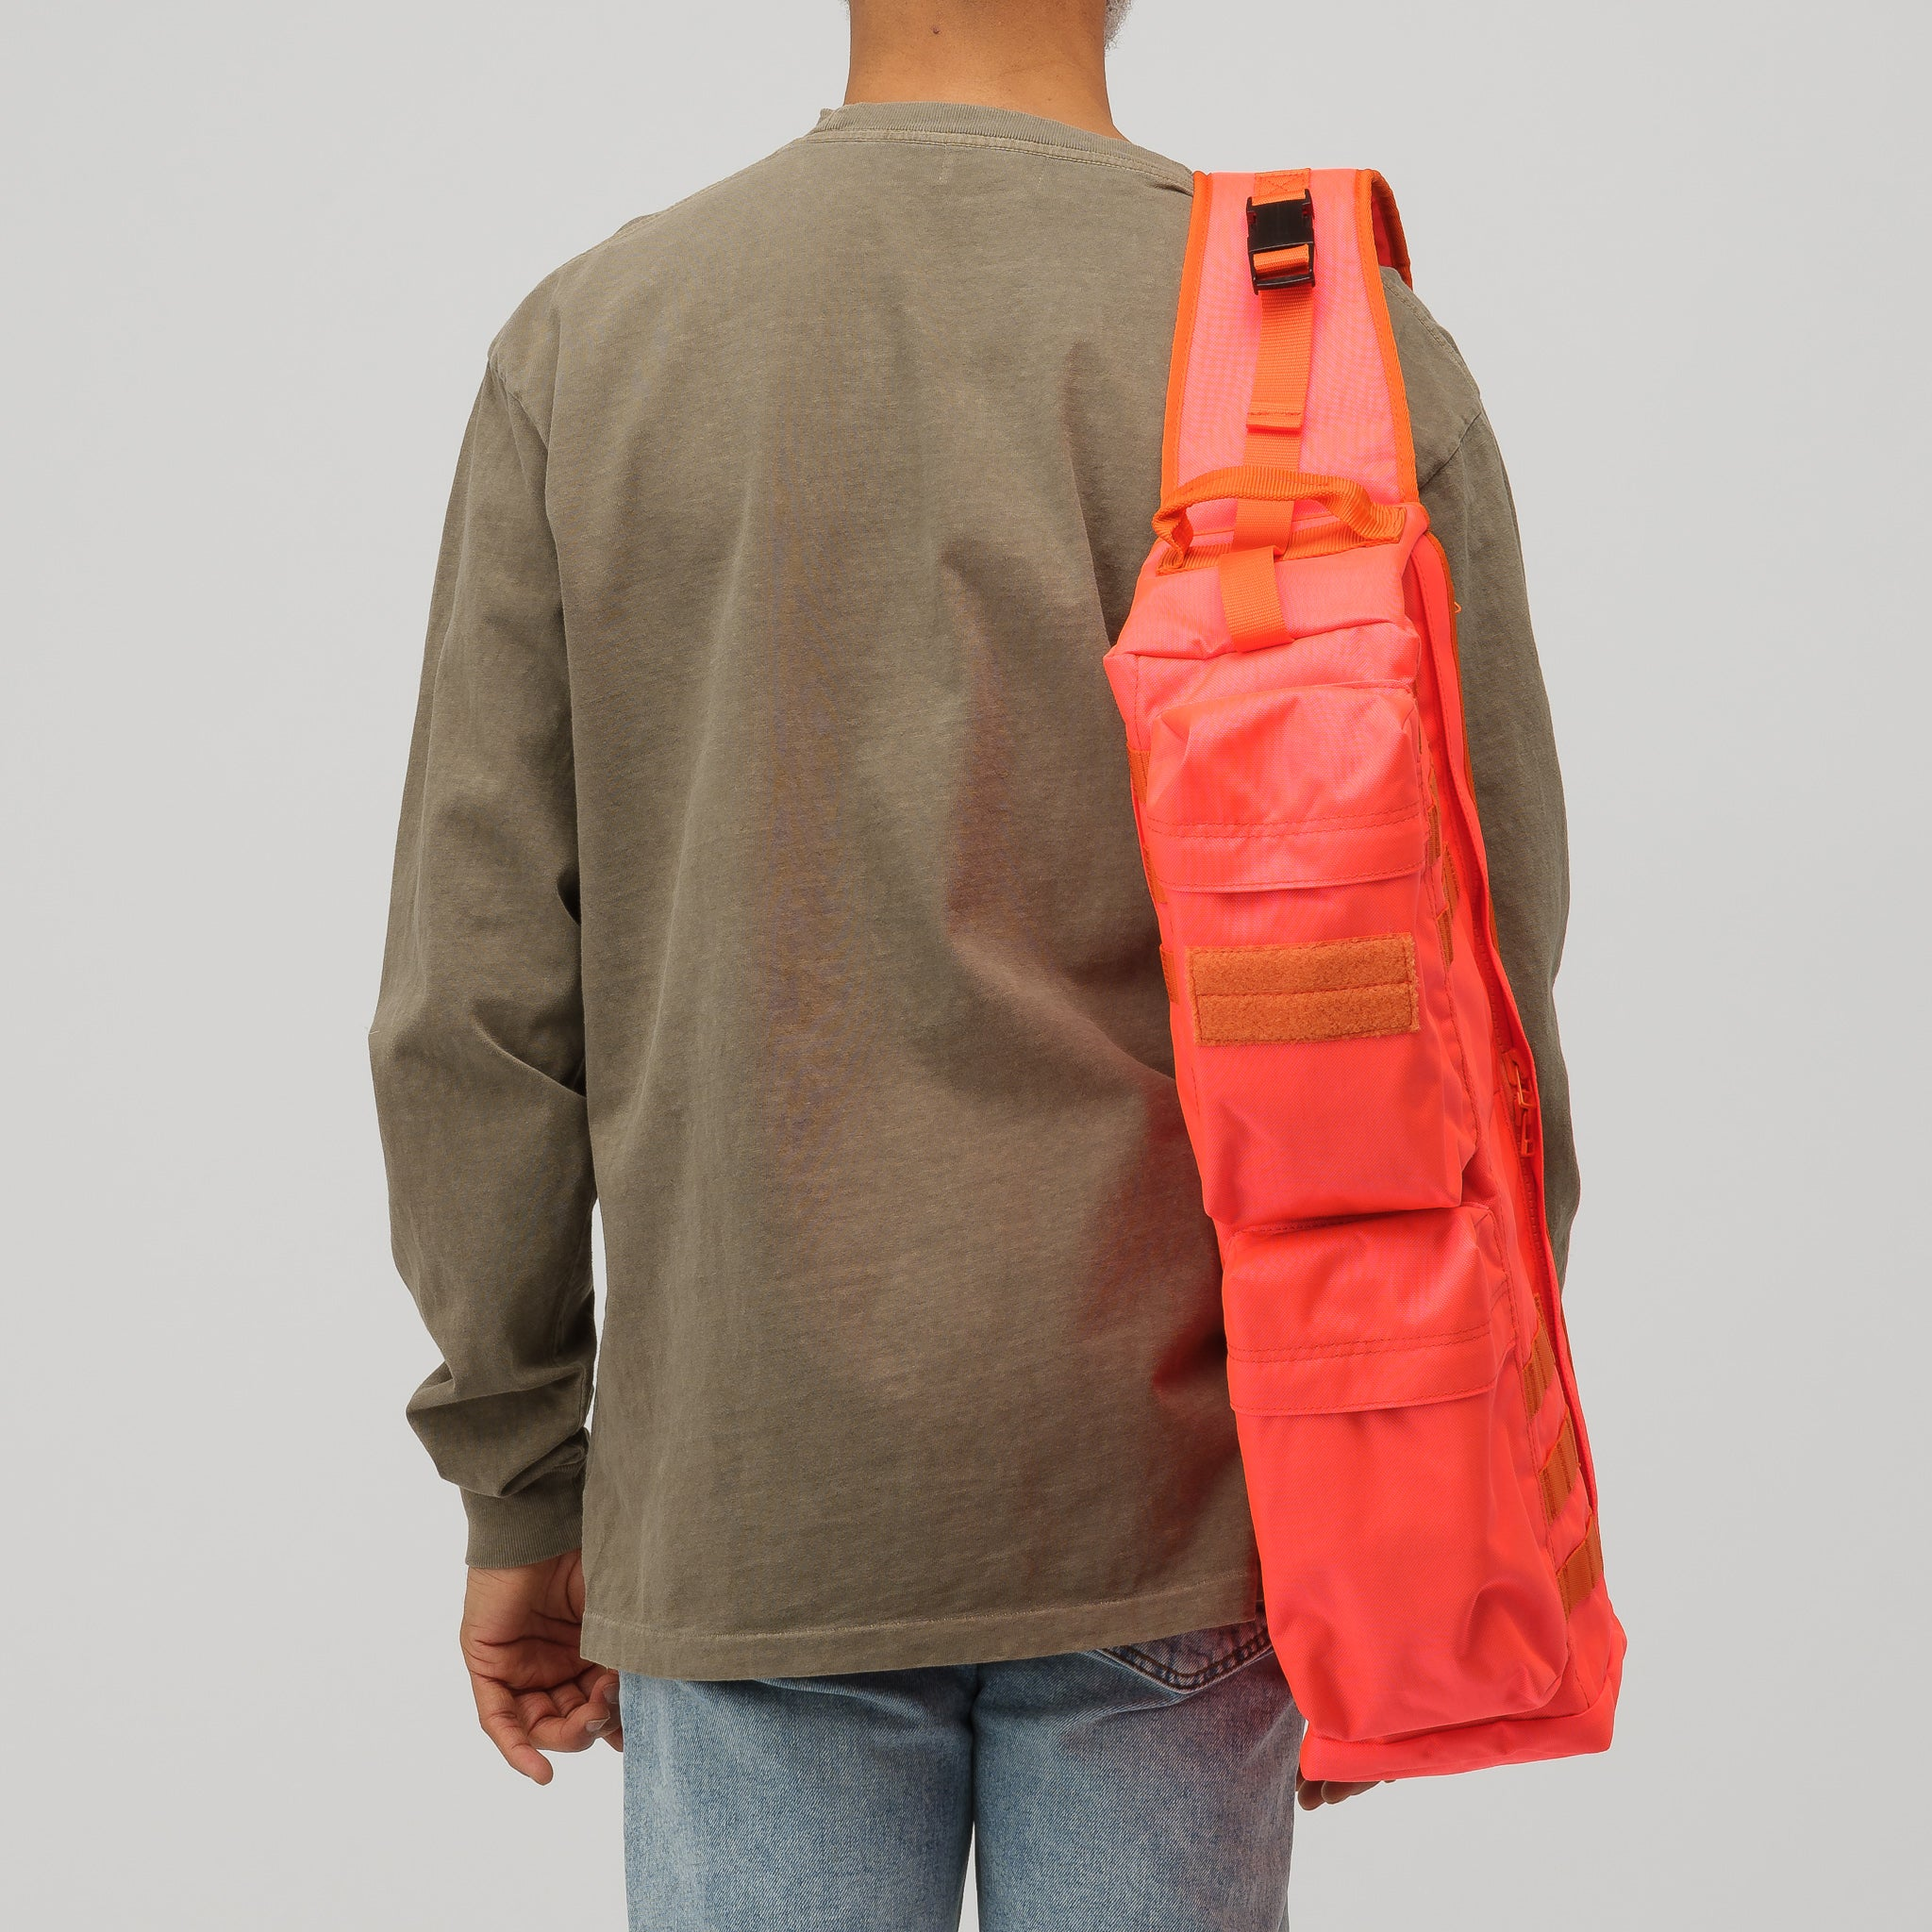 Nylon Oxford Military Shoulder Bag in Orange